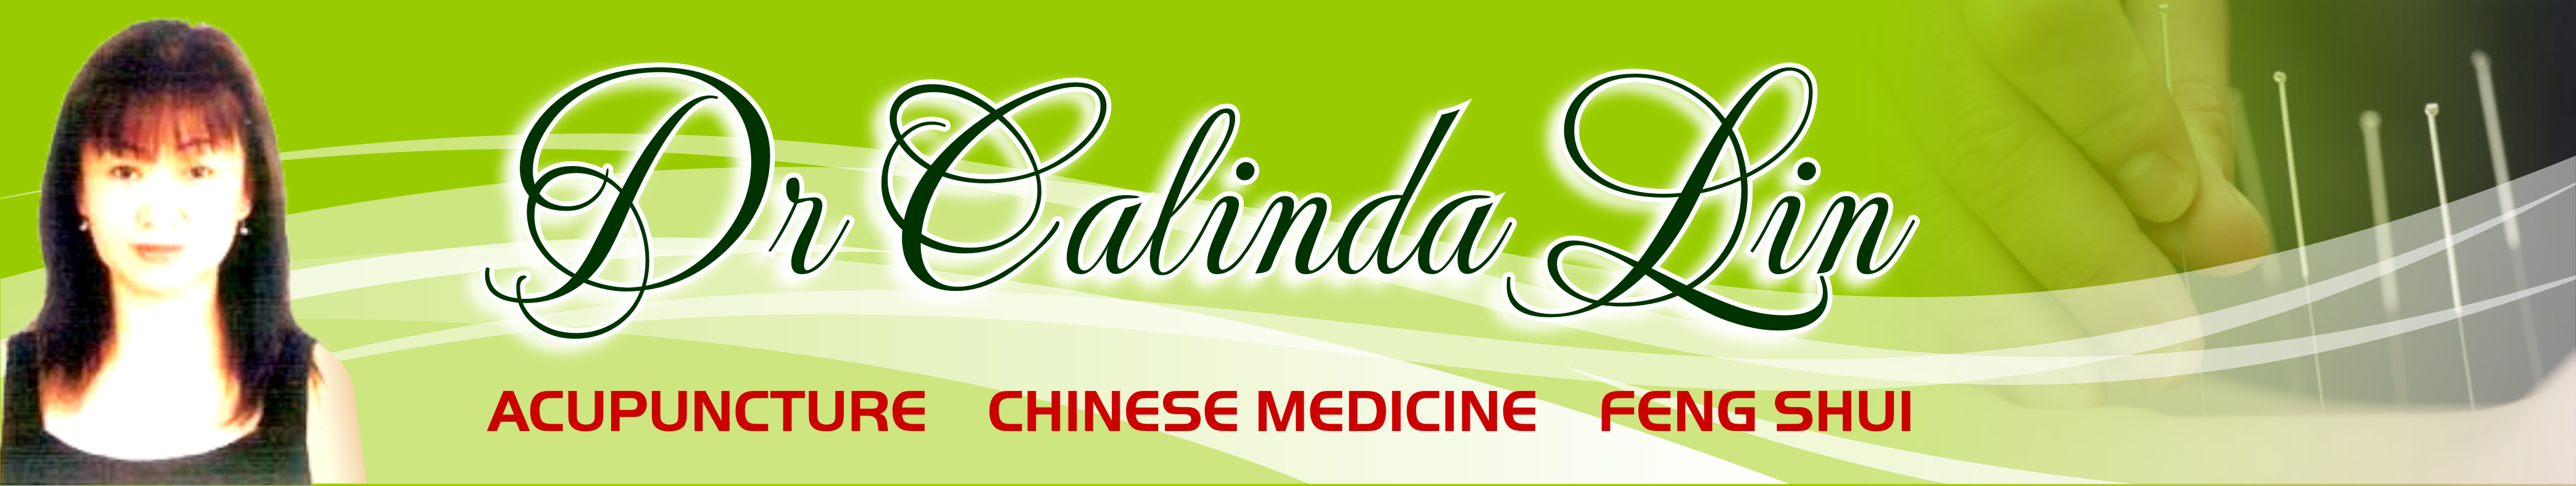 acupuncture feng shui durban north acupuncture calinda lin Chinese medicine  | , | Calinda Acupuncture And Health Center